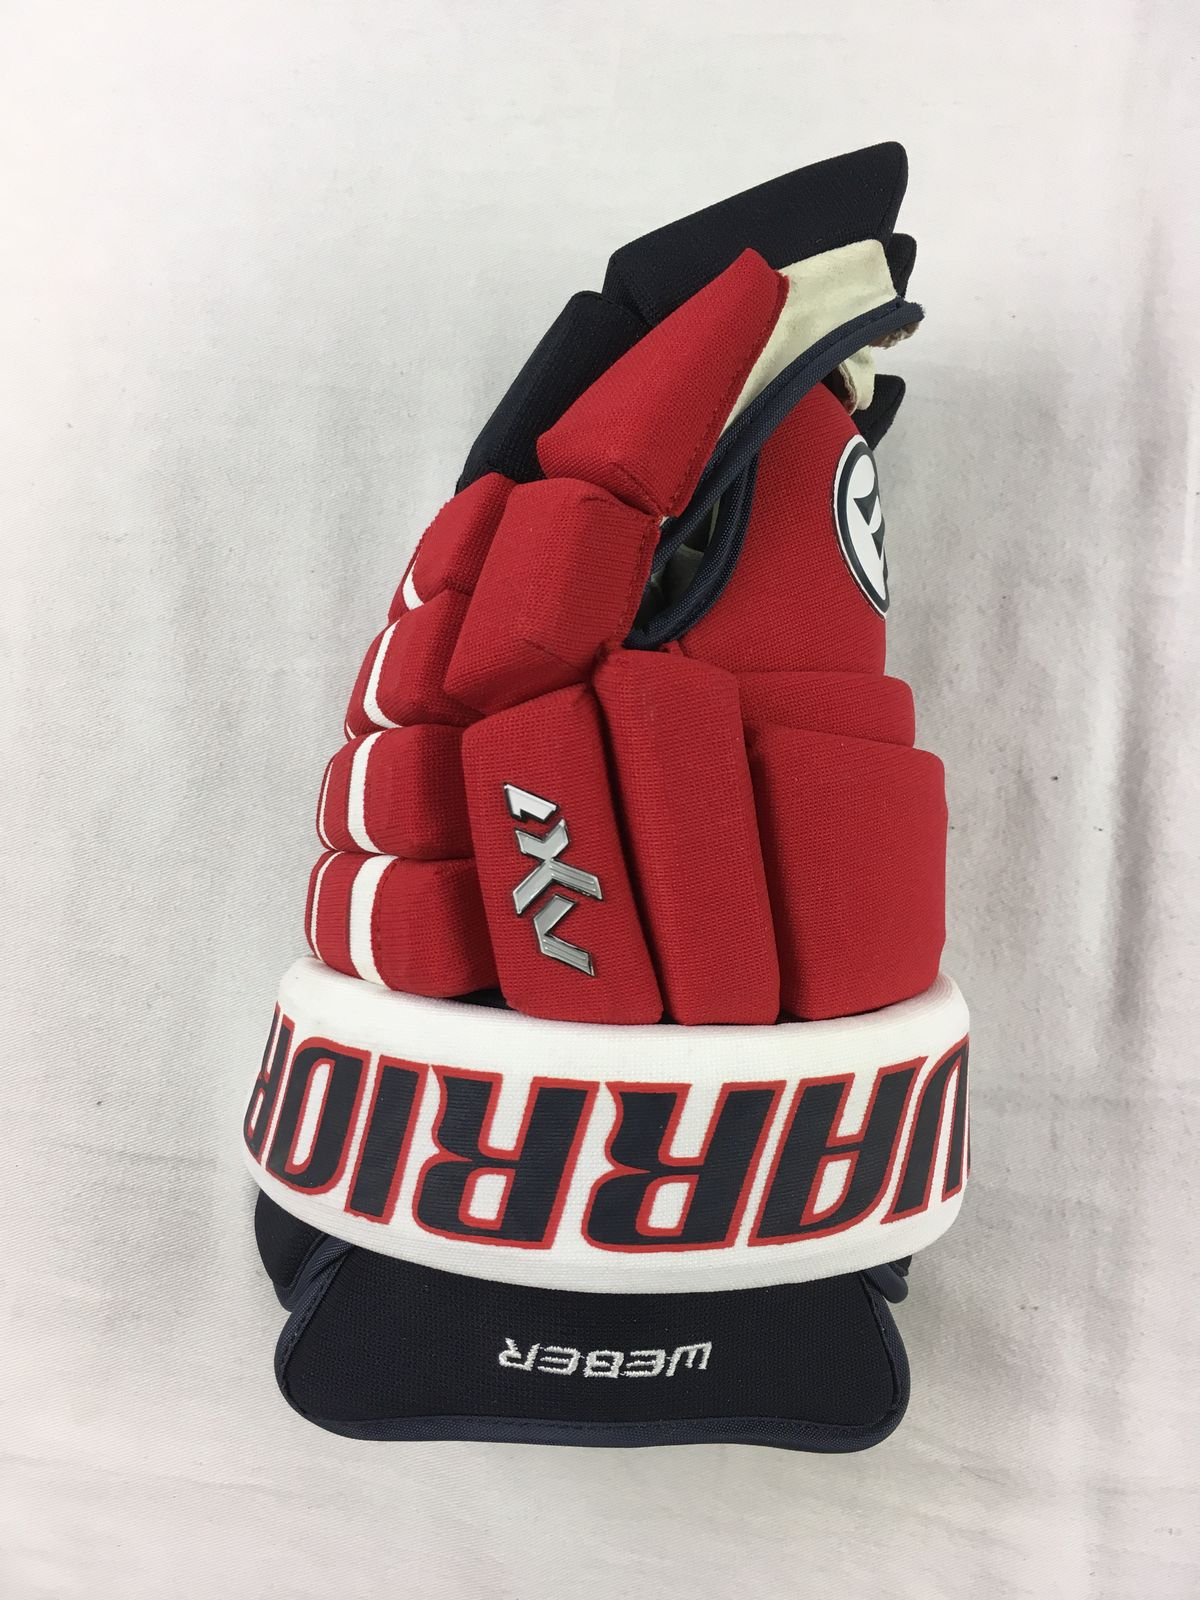 Warrior Washington Capitals Mike Weber Single Hockey Glove Lxl